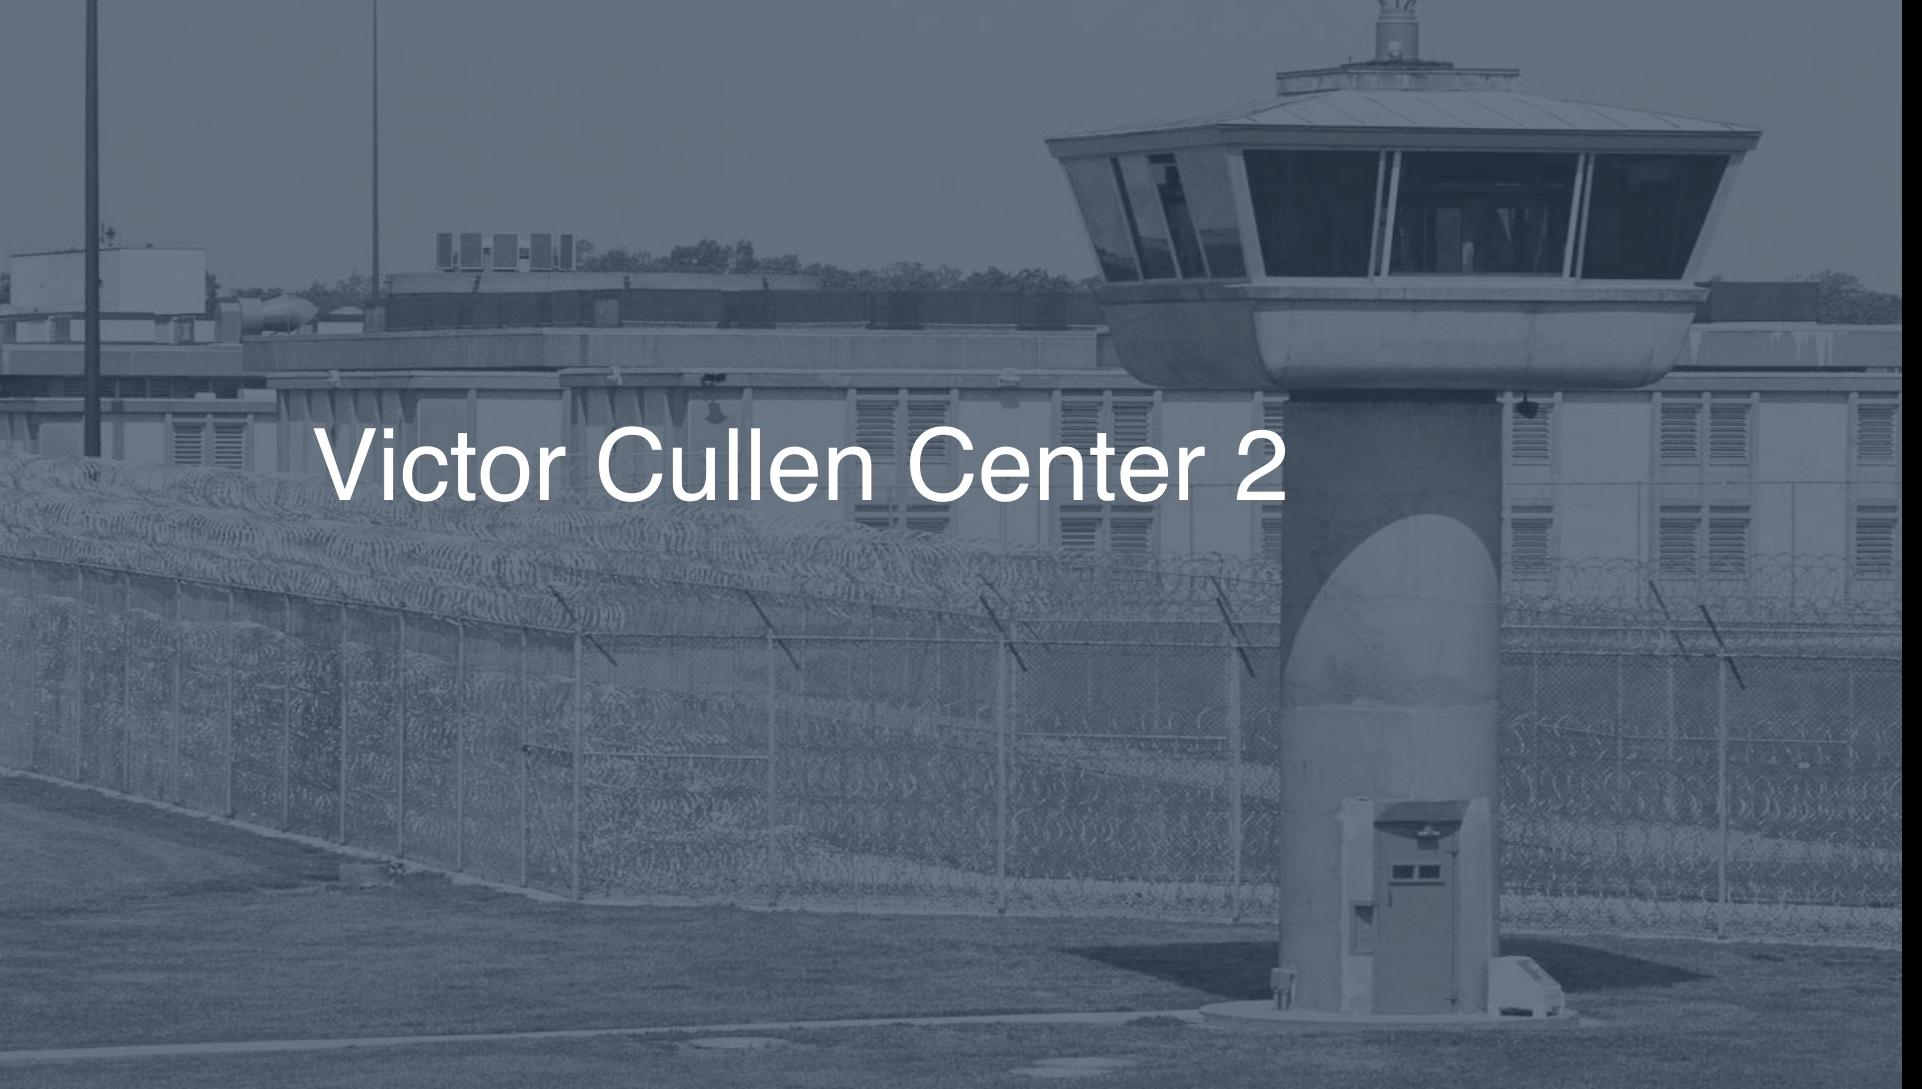 Victor Cullen Center correctional facility picture